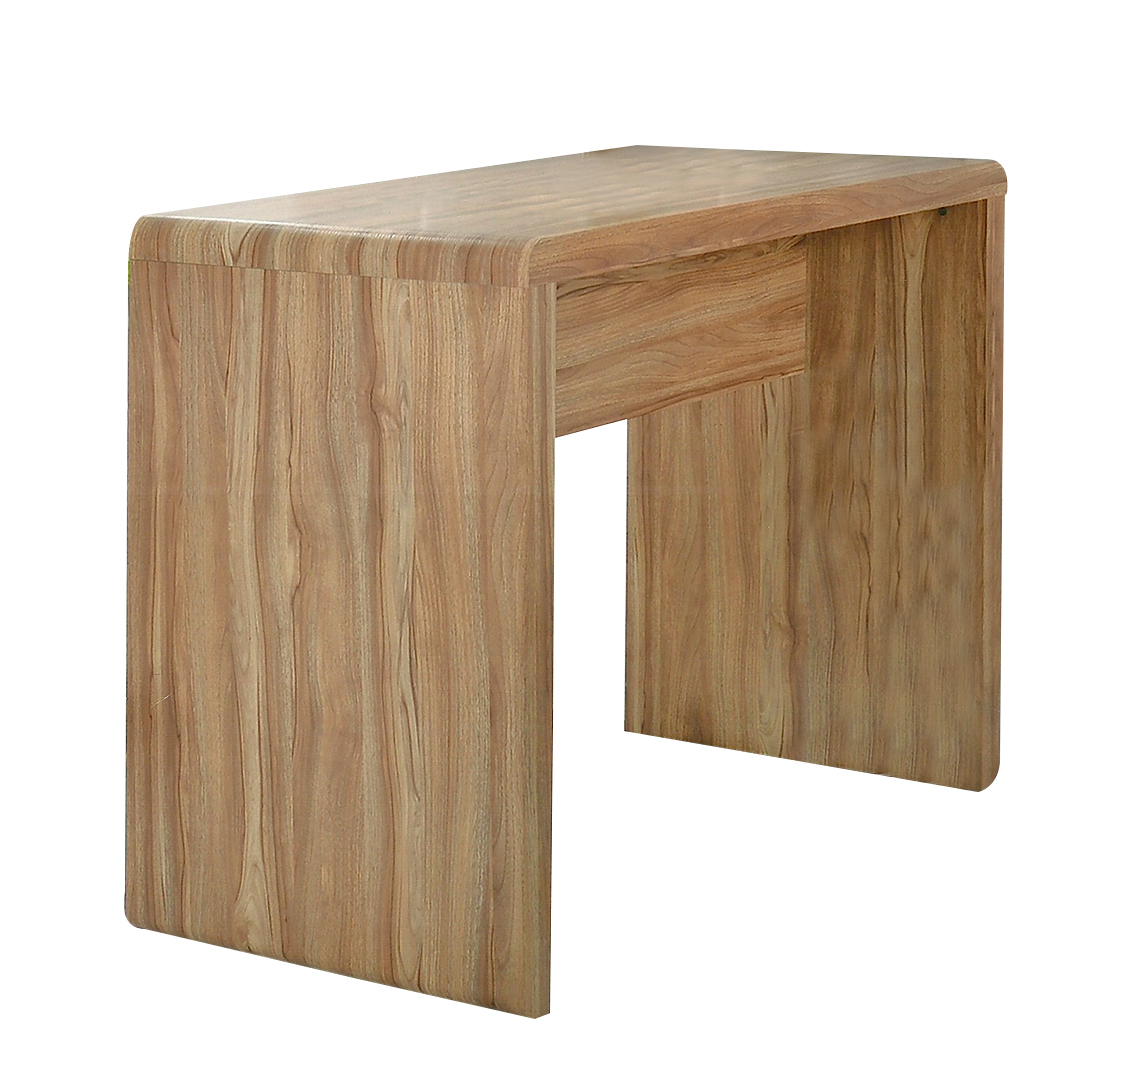 pub table 4337 wood.jpg